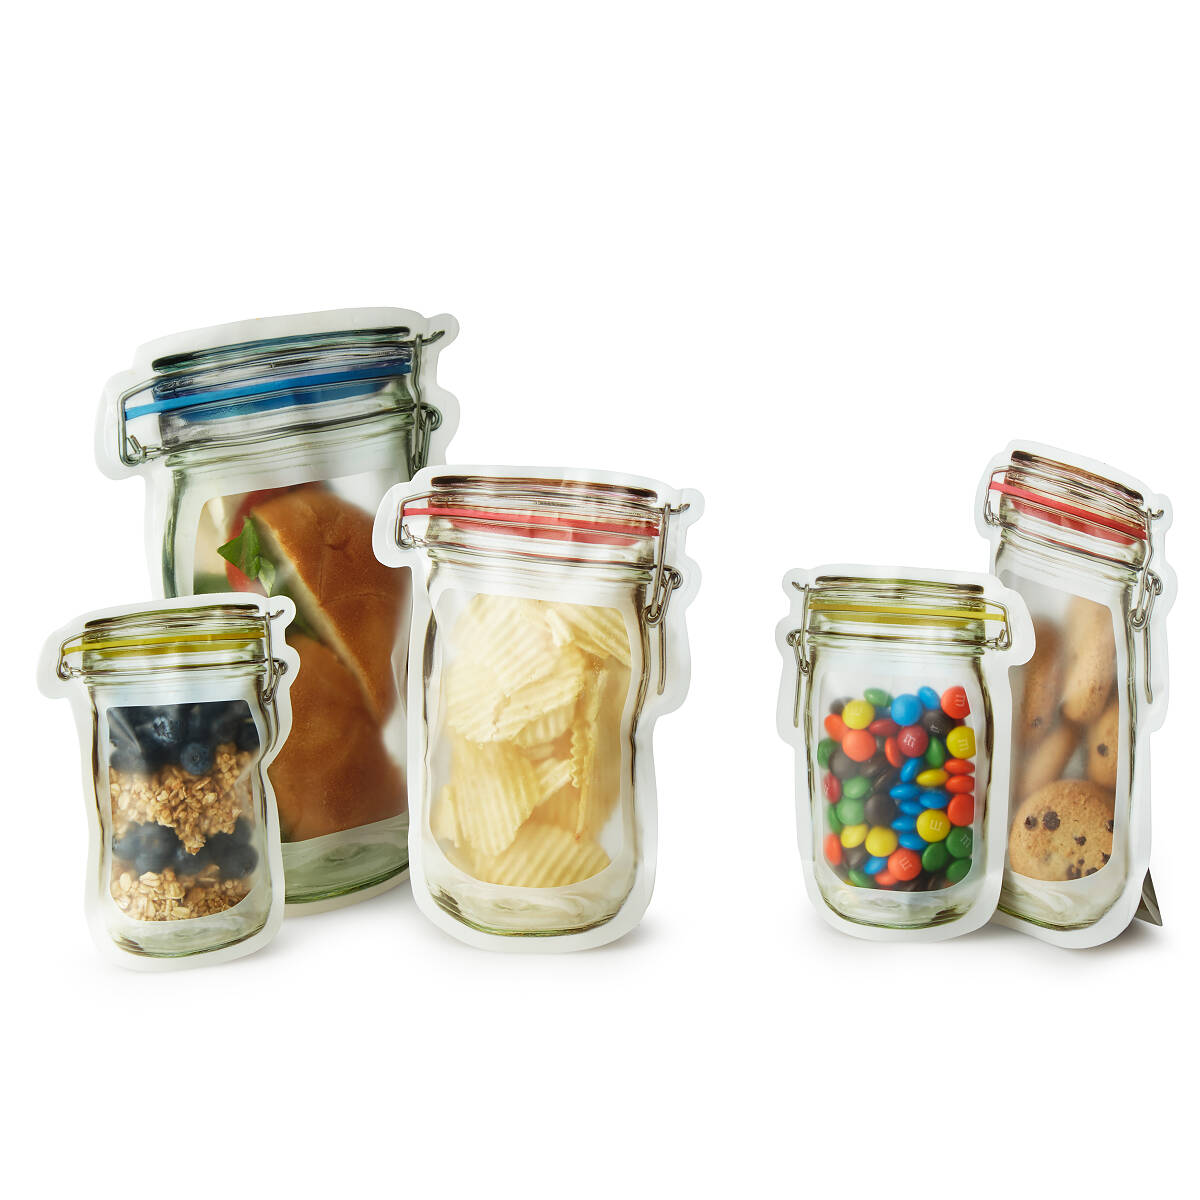 Reusable Hinged Jar Zipper Bags - Set of 9 2 thumbnail  sc 1 st  UncommonGoods & Reusable Hinged Jar Zipper Bags - Set of 9 | mason jar zipper bags ...